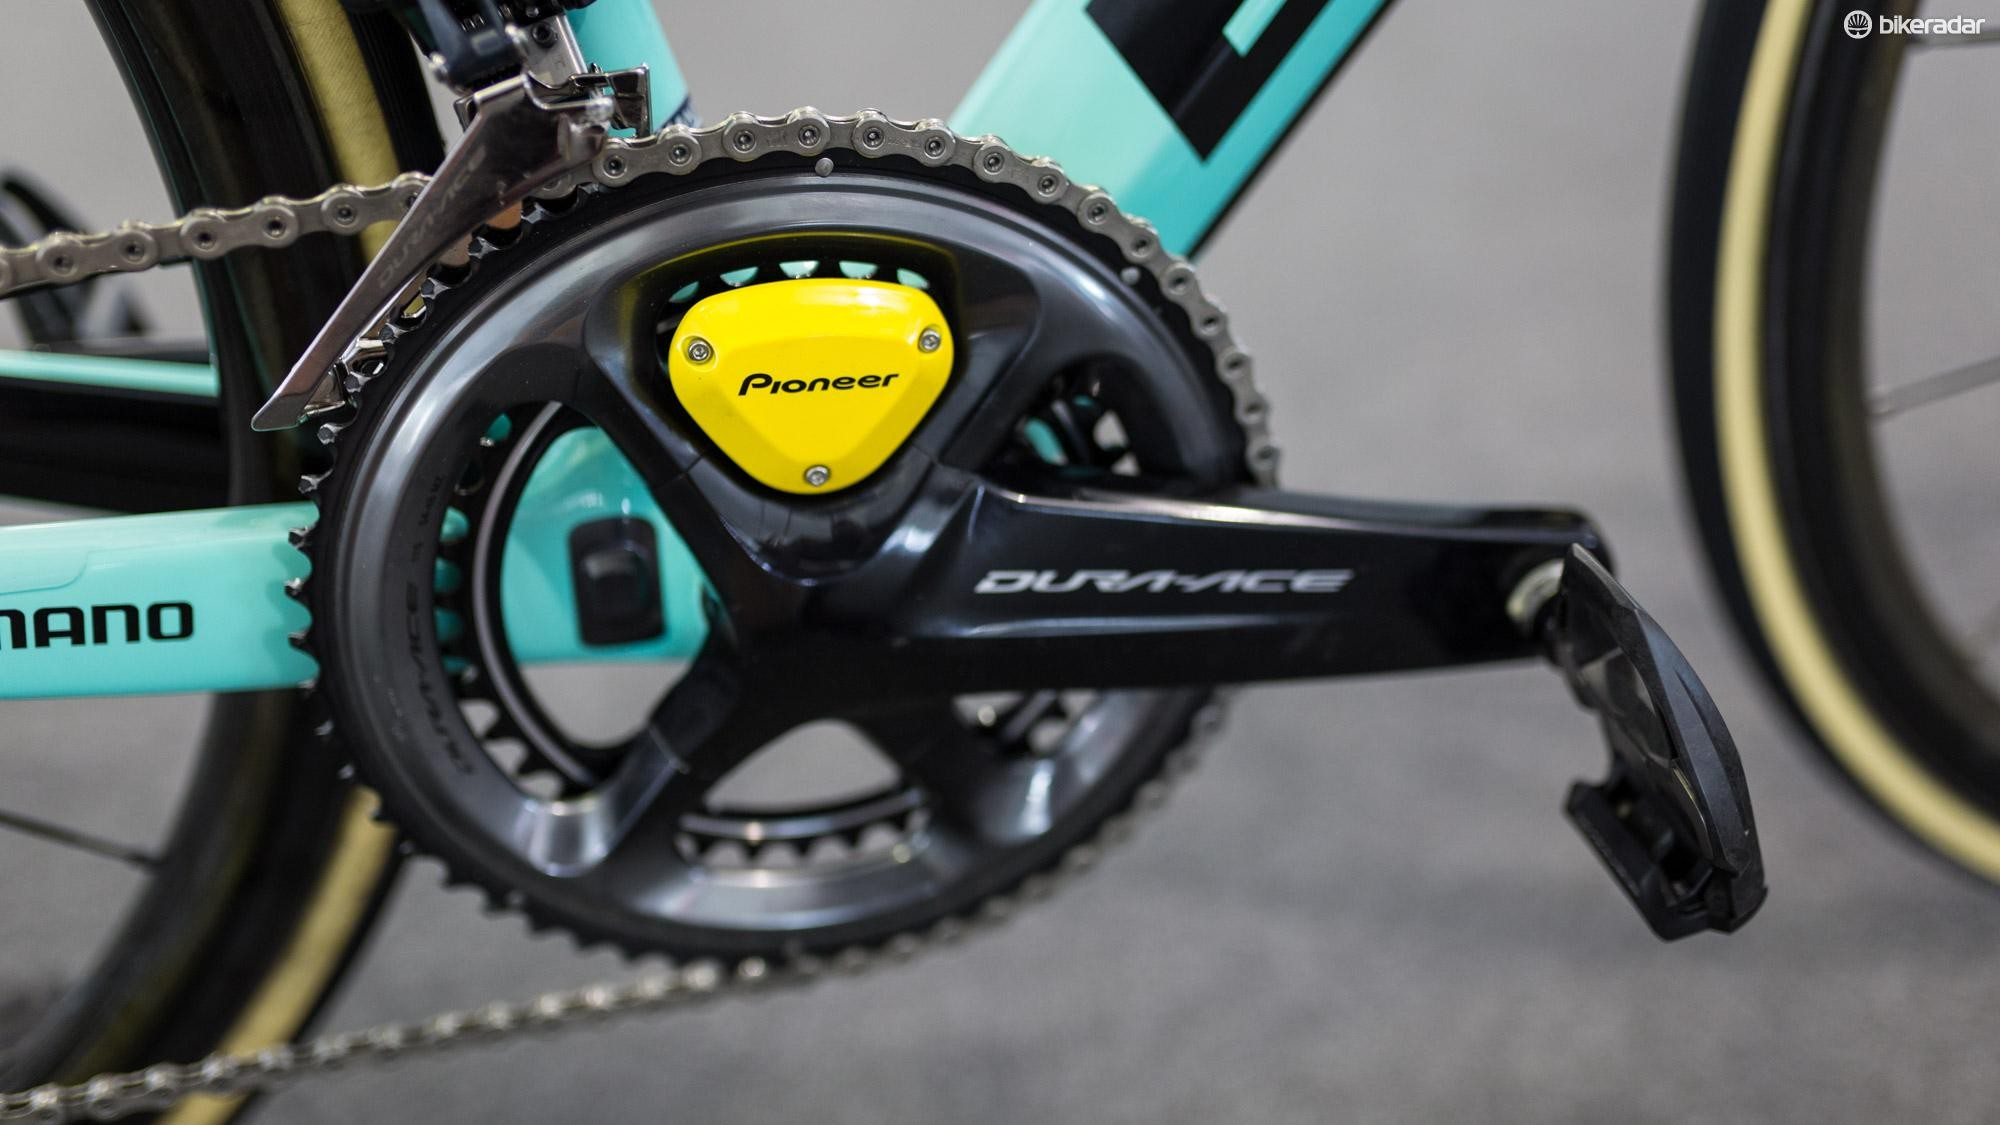 LottoNL-Jumbo use Pioneer power meters in conjunction with Shimano groupsets